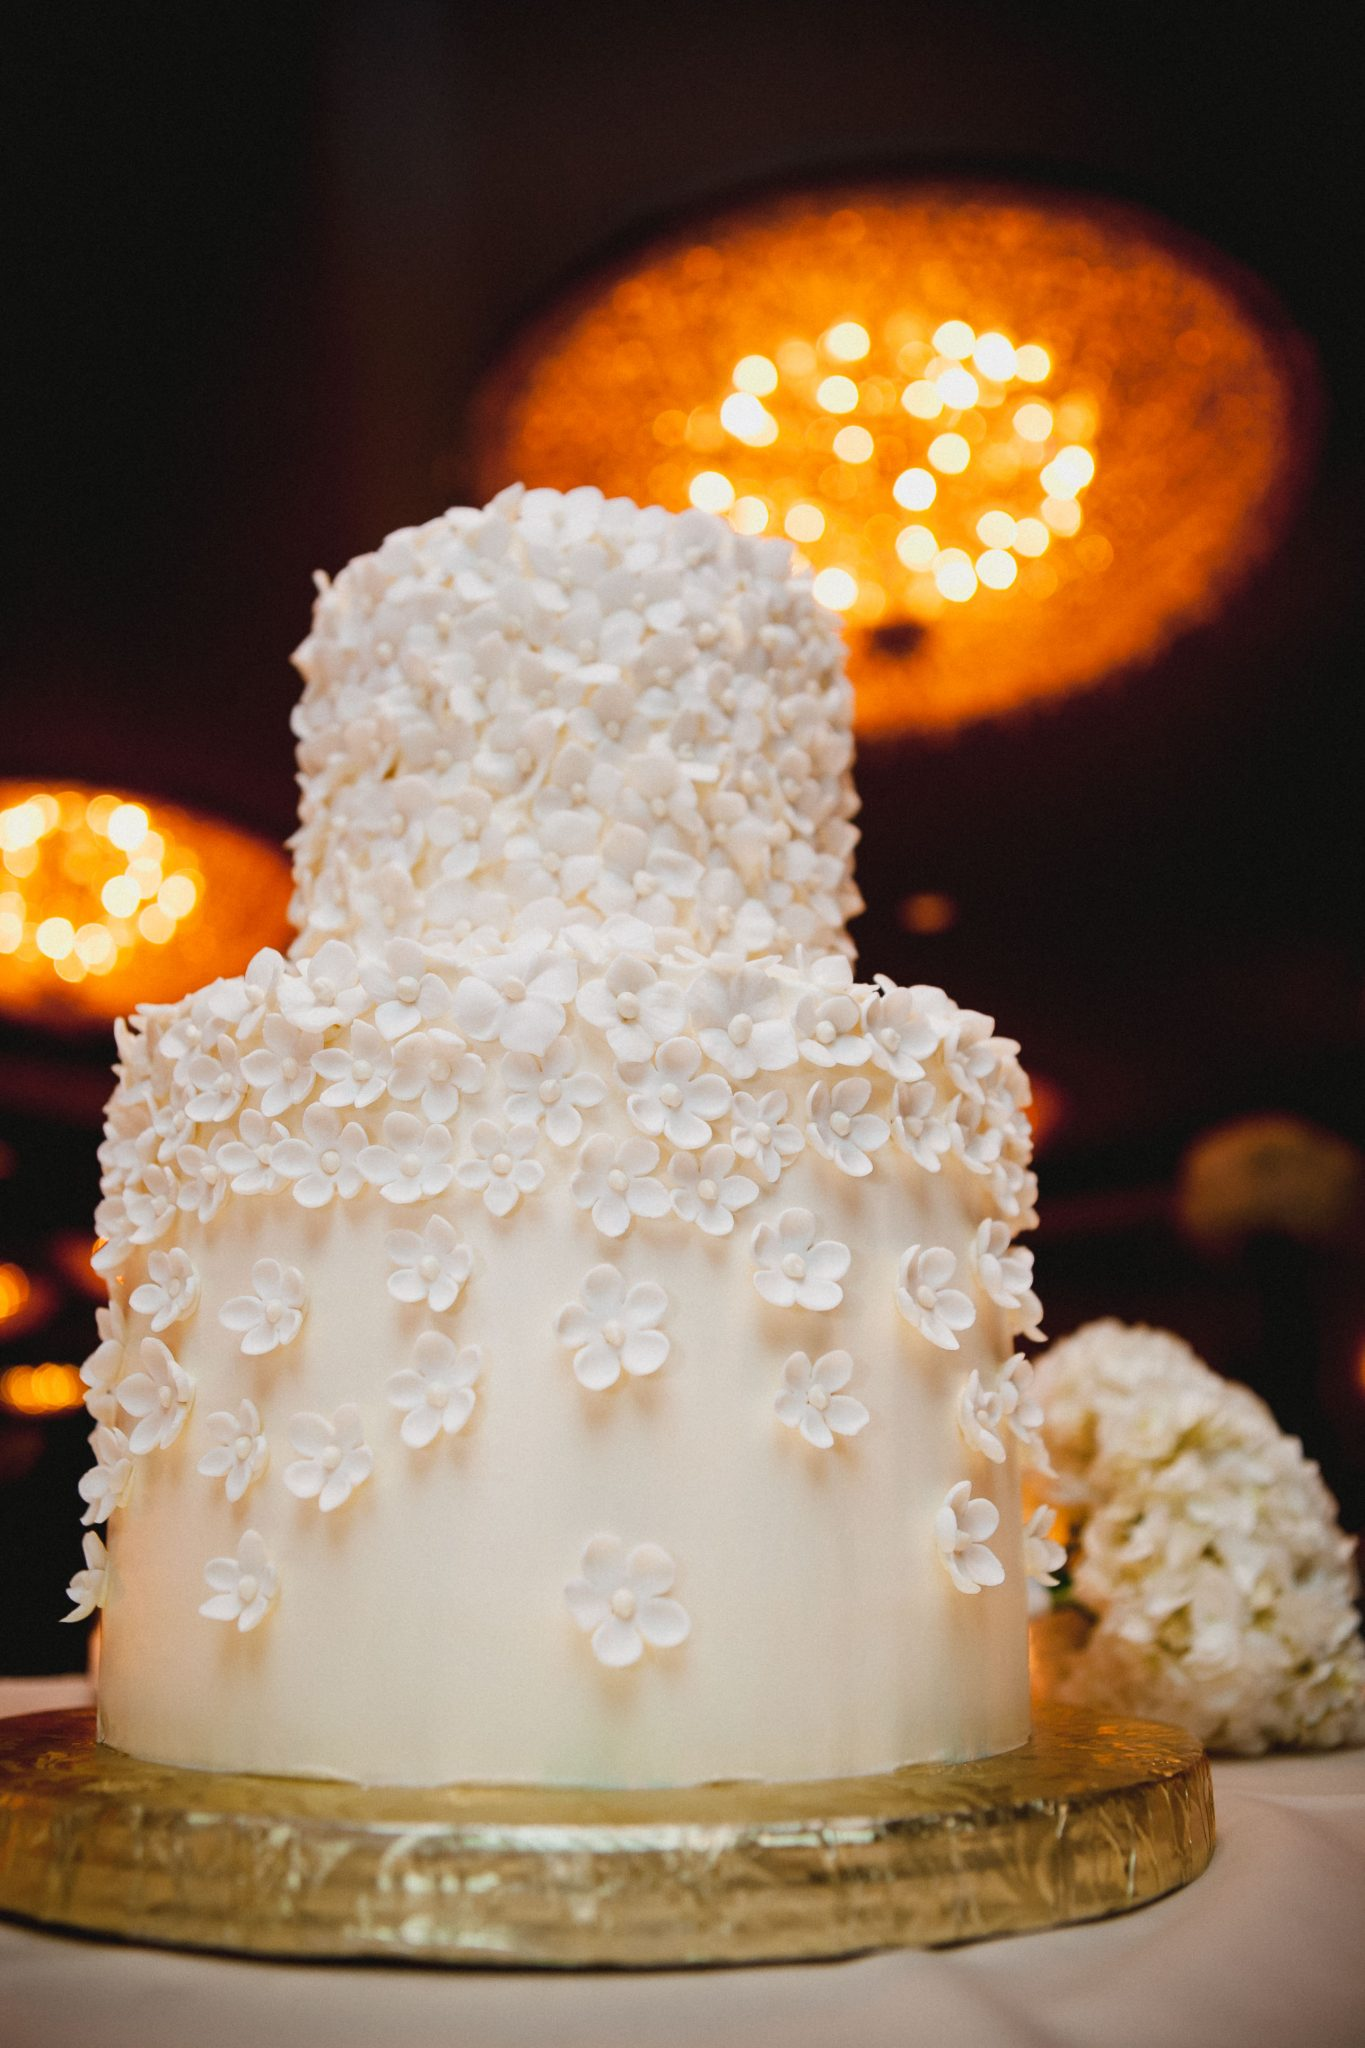 Thin gold cake stand with white flowers on the wedding cake